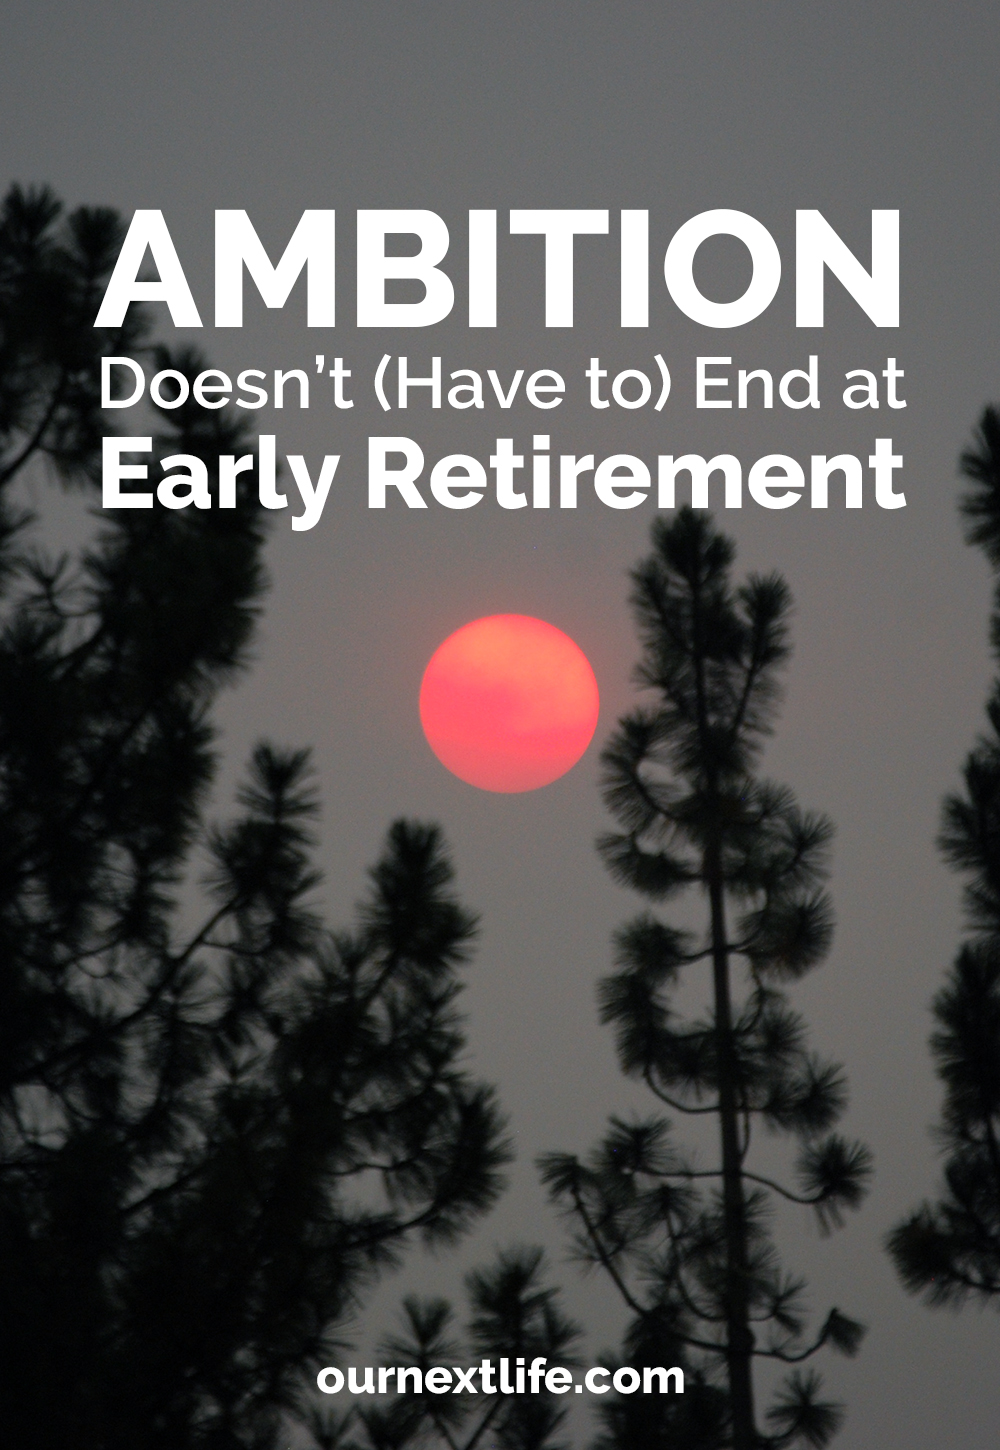 Ambition Doesn't (Have to) End at Retirement // Our Next Life // early retirement, financial independence, FIRE, financial independence retire early, happiness, adventure, purpose